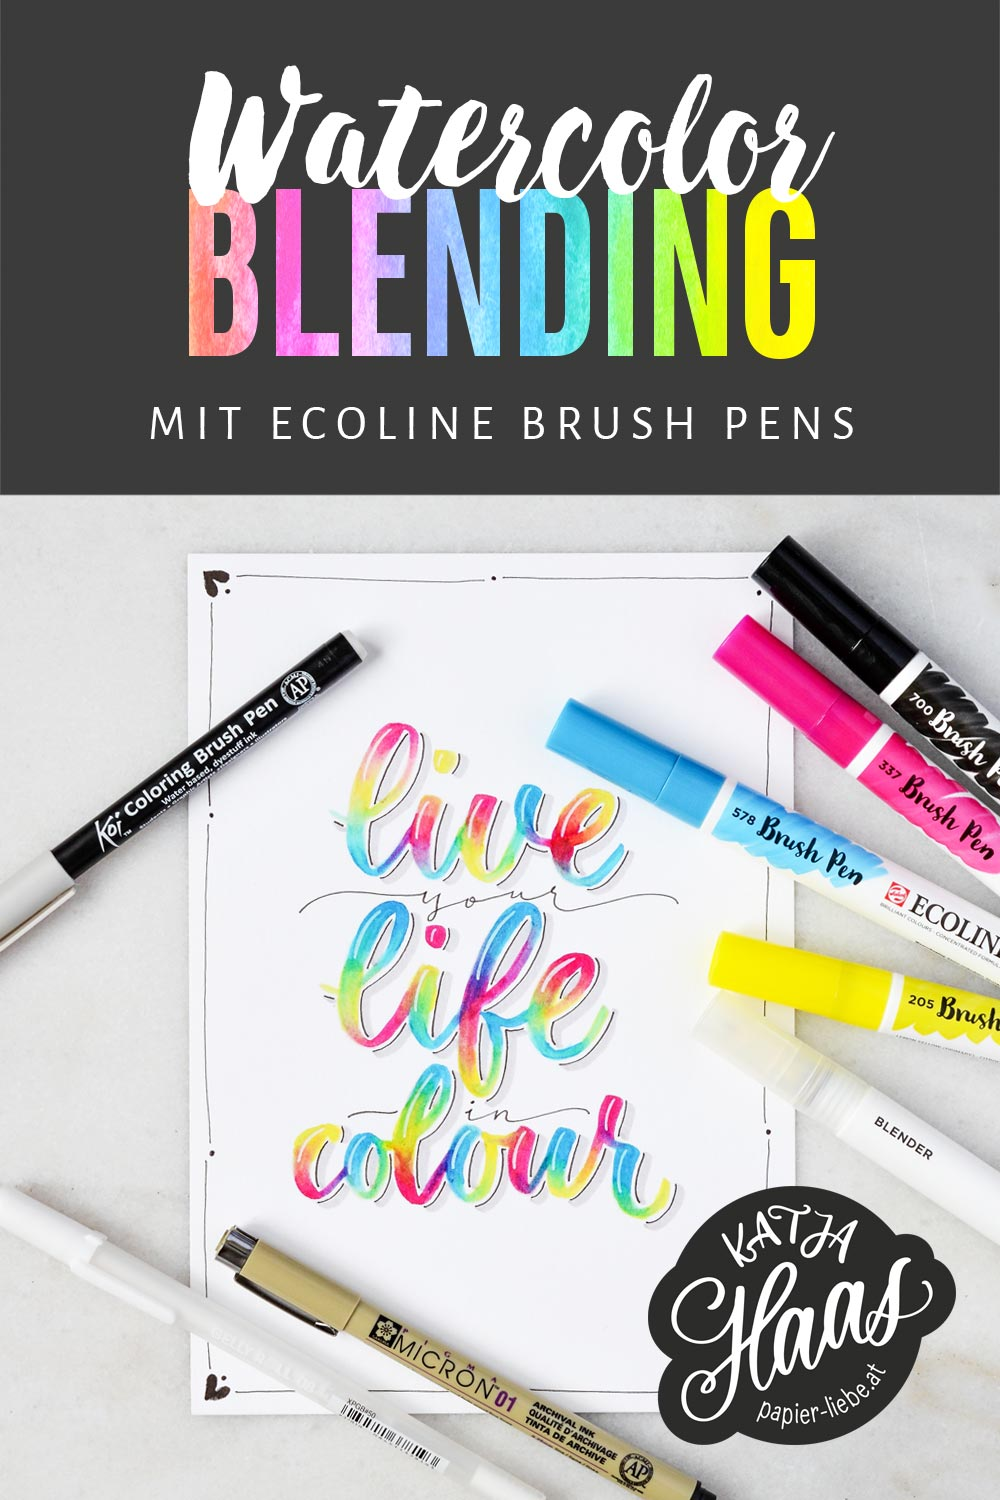 Watercolor-Blending mit Ecoline Brush Pens